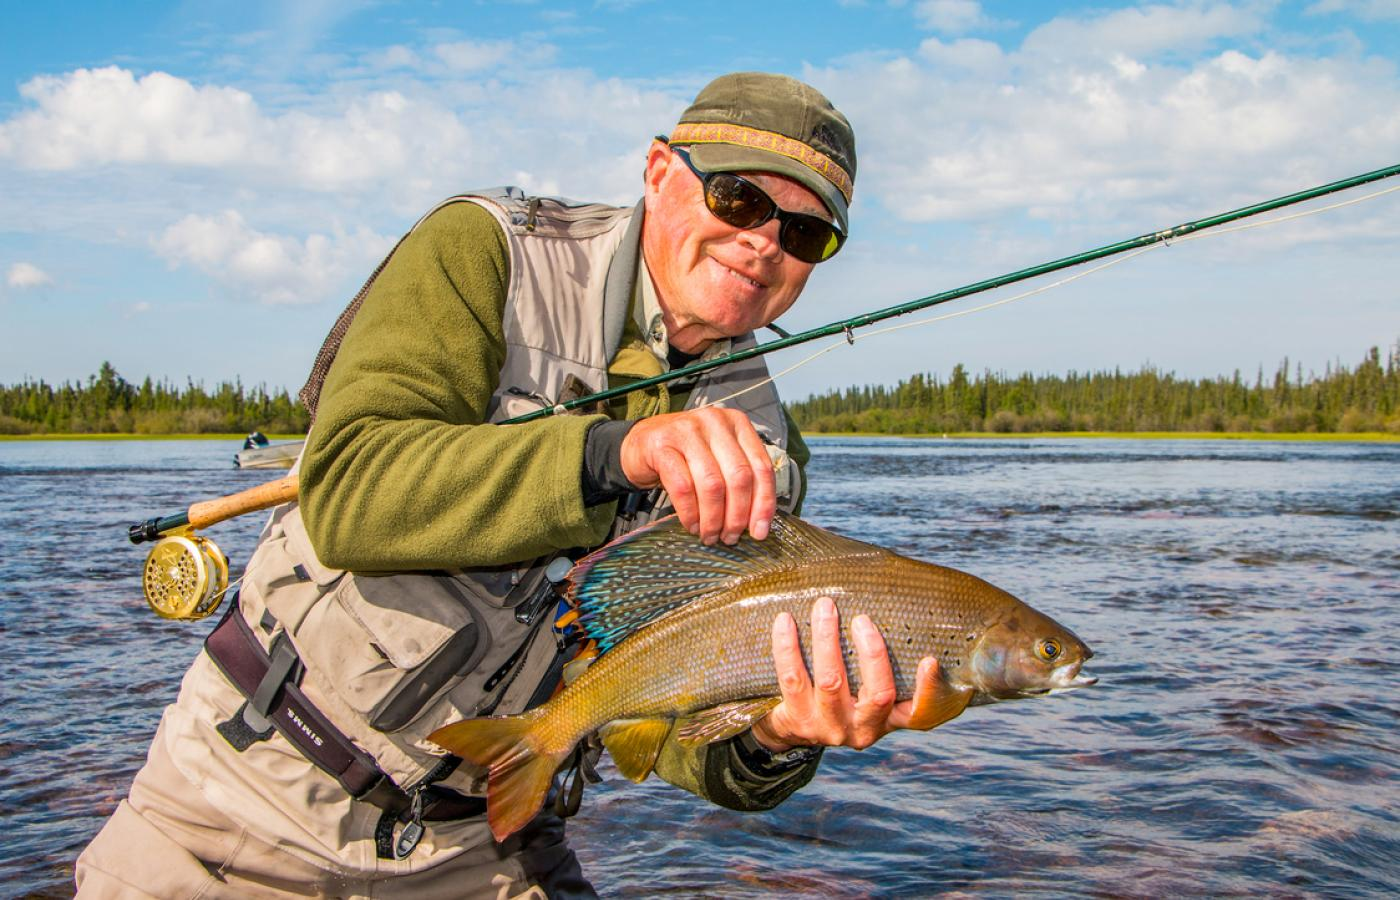 Fishing for Arctic grayling in the Northwest Territories